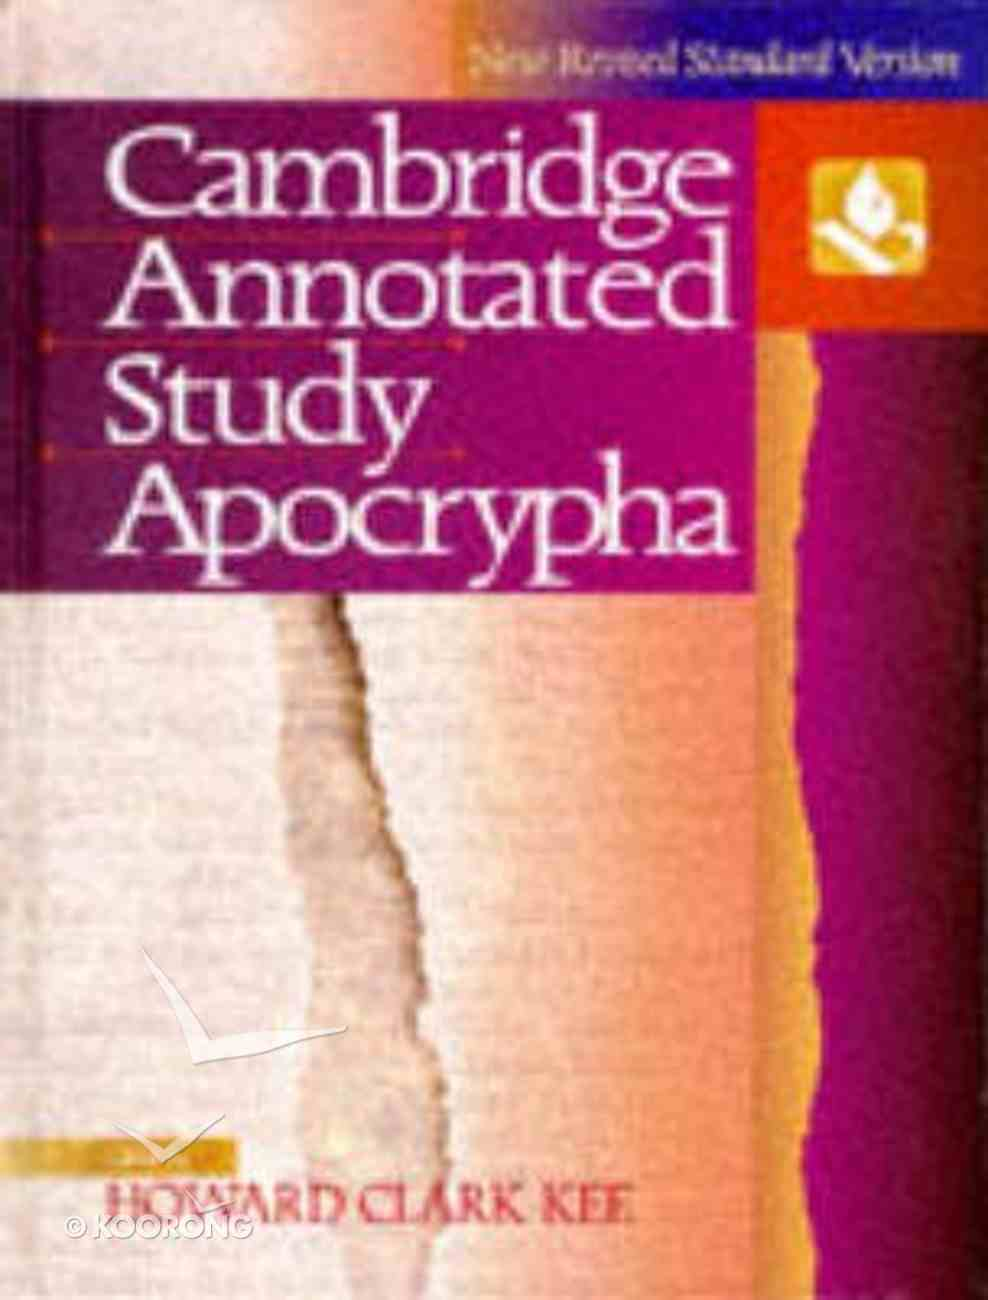 NRSV Cambridge Annotated Study Apocrypha Hardback